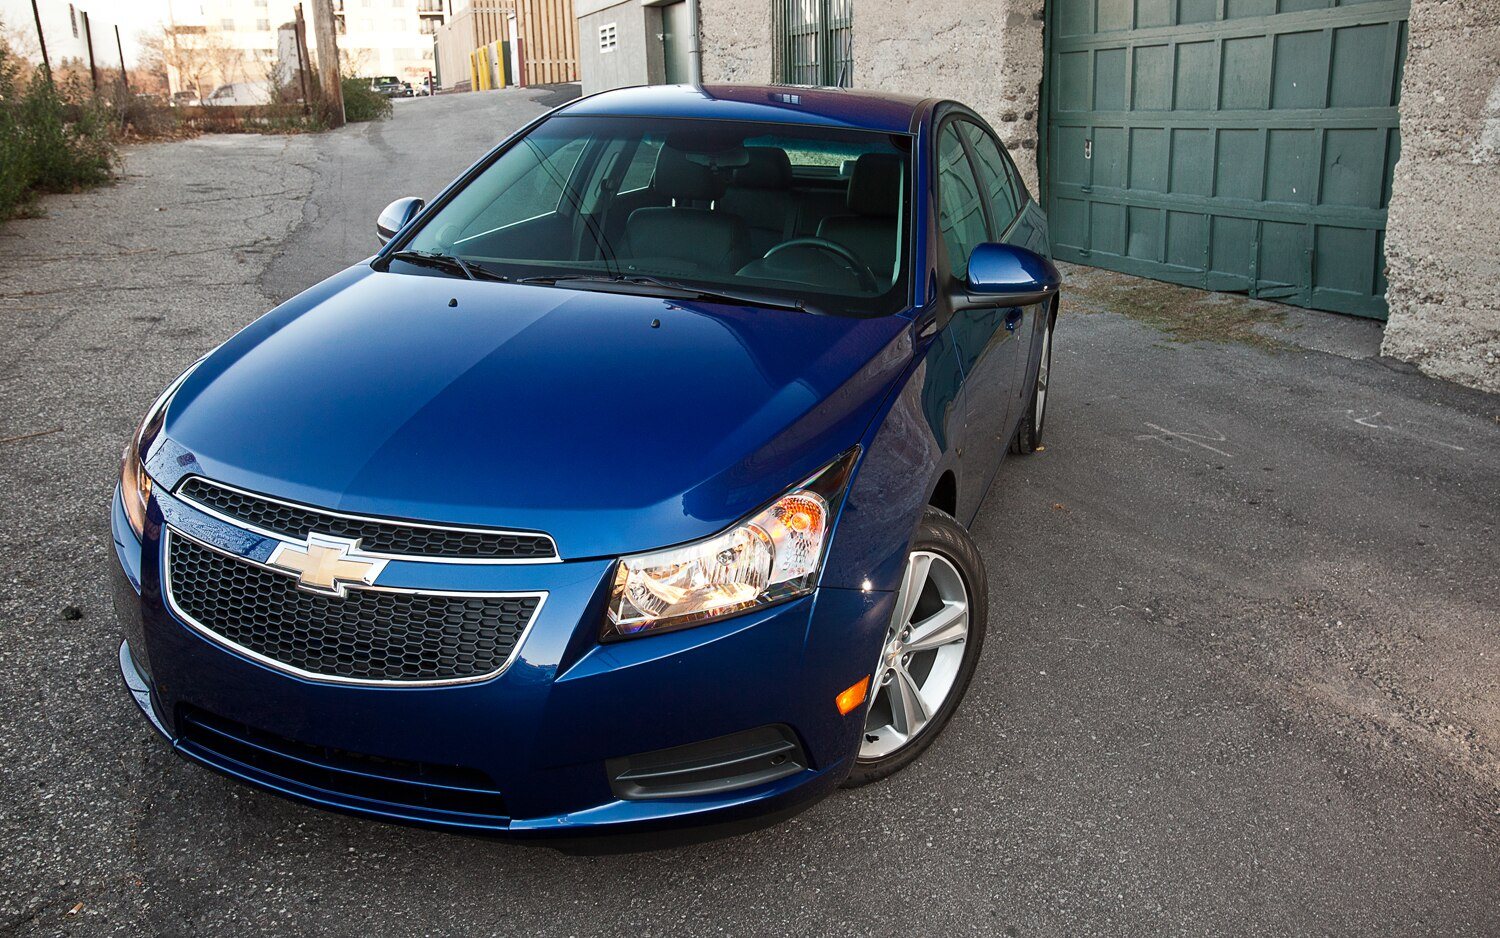 2012 Chevrolet Cruze 2LT Front Left View